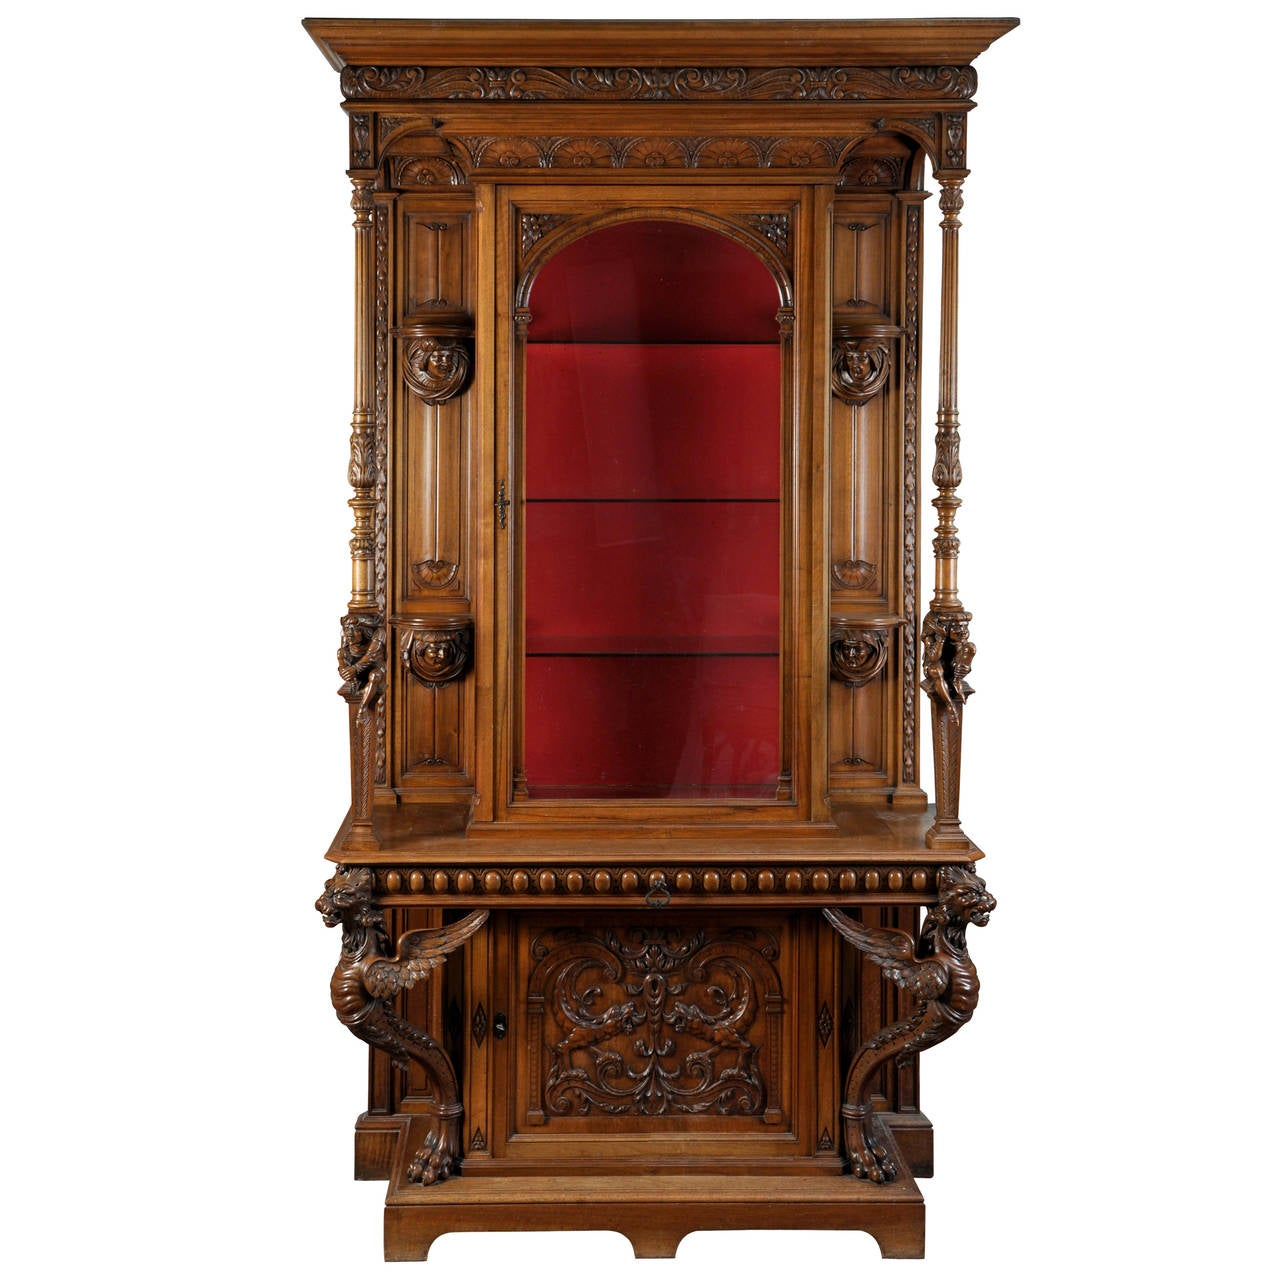 bellanger cabinetmaker neo renaissance style cabinet with chimeras decor for sale at 1stdibs. Black Bedroom Furniture Sets. Home Design Ideas